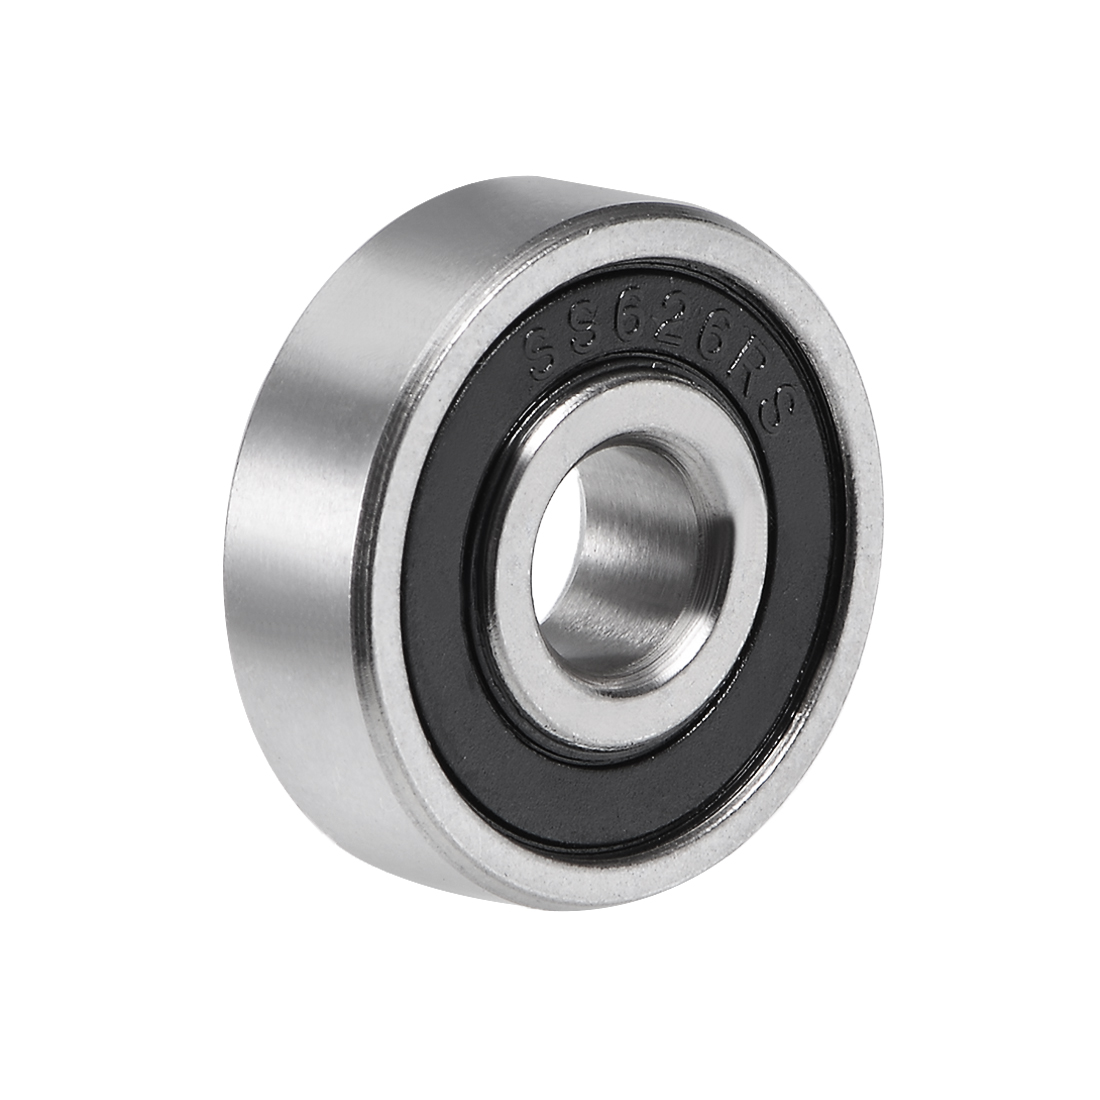 S626-2RS Stainless Steel Ball Bearing 6x19x6mm Double Sealed 626RS Bearings